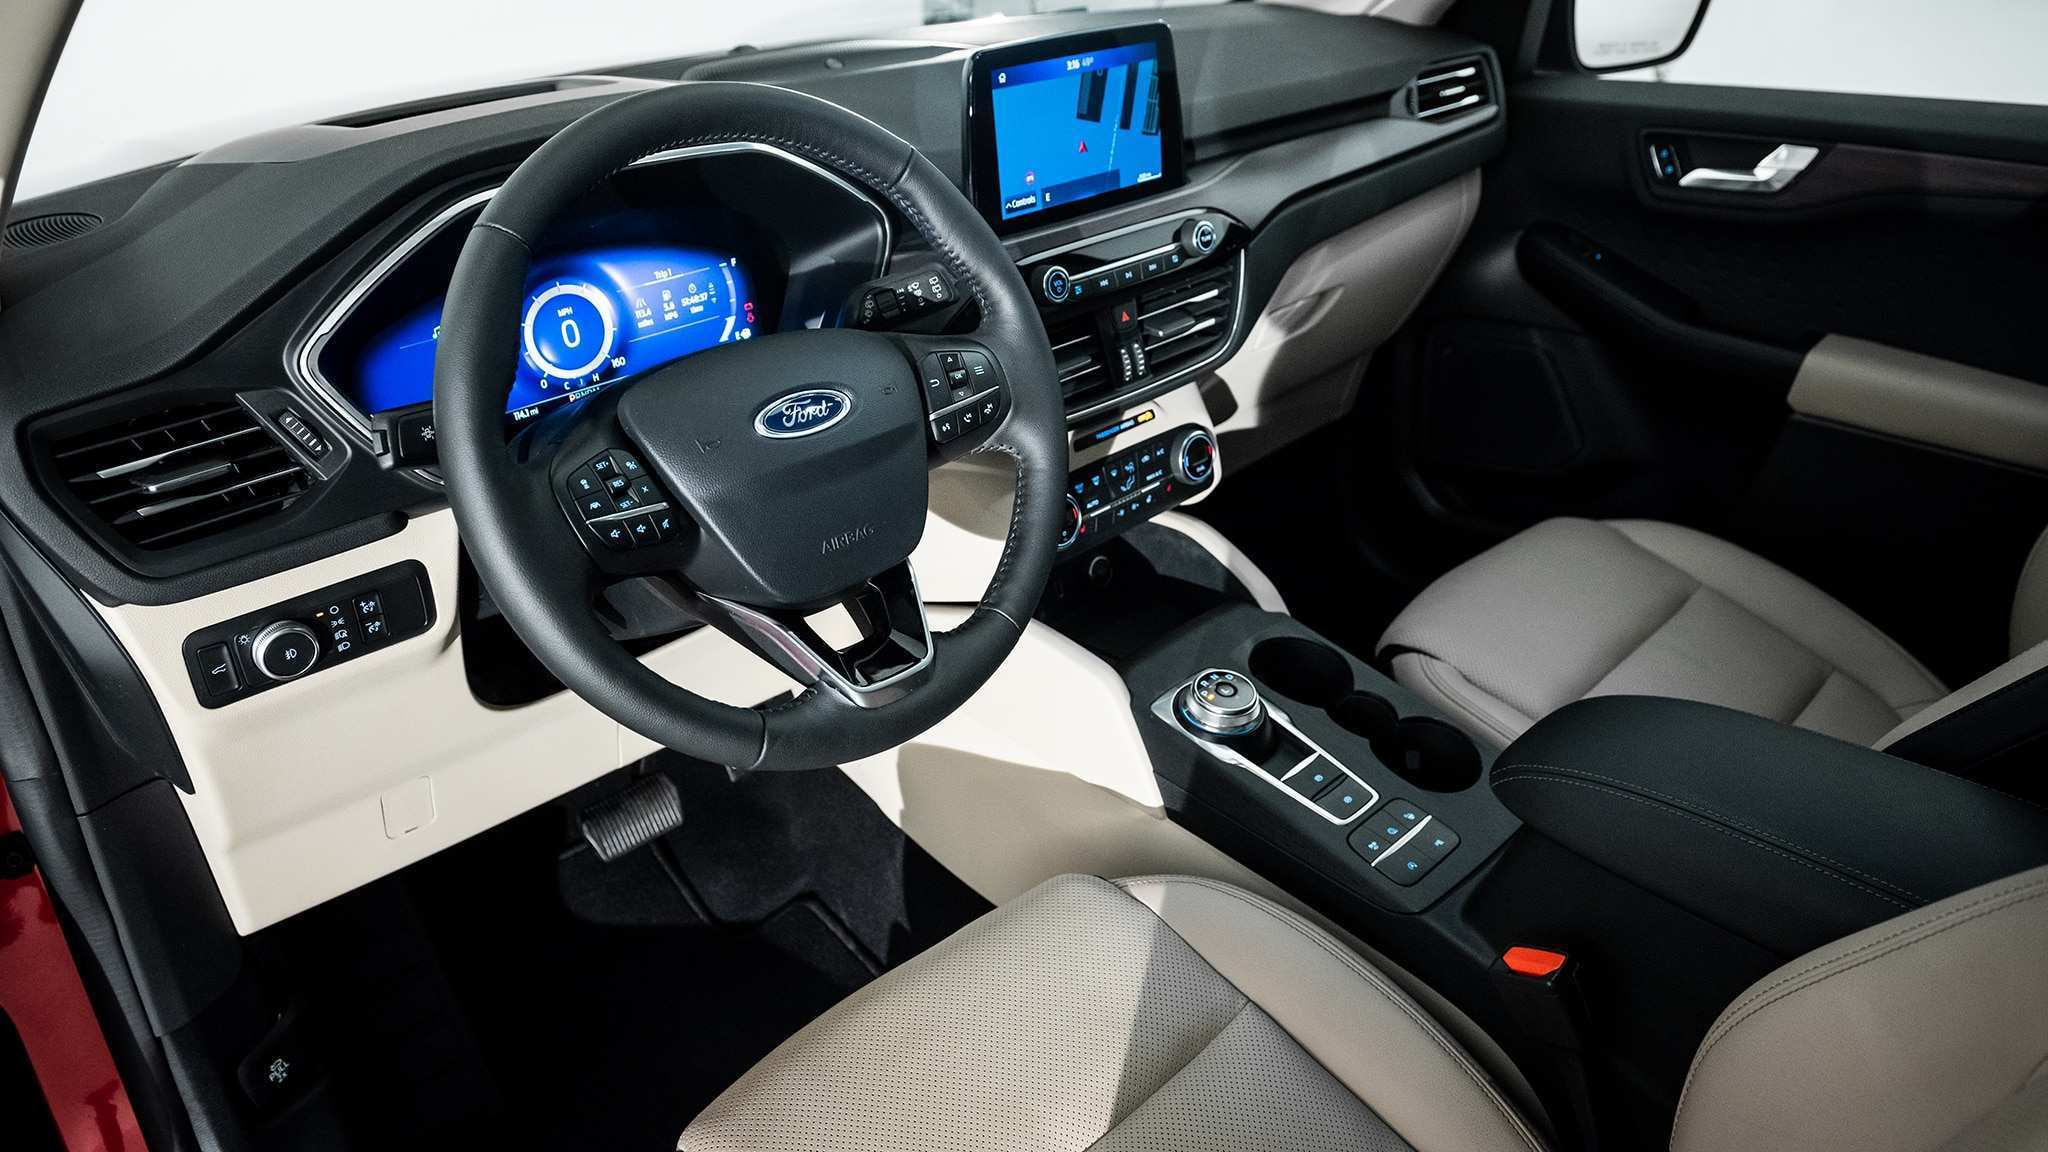 44 New 2020 Ford Escape Interior Style